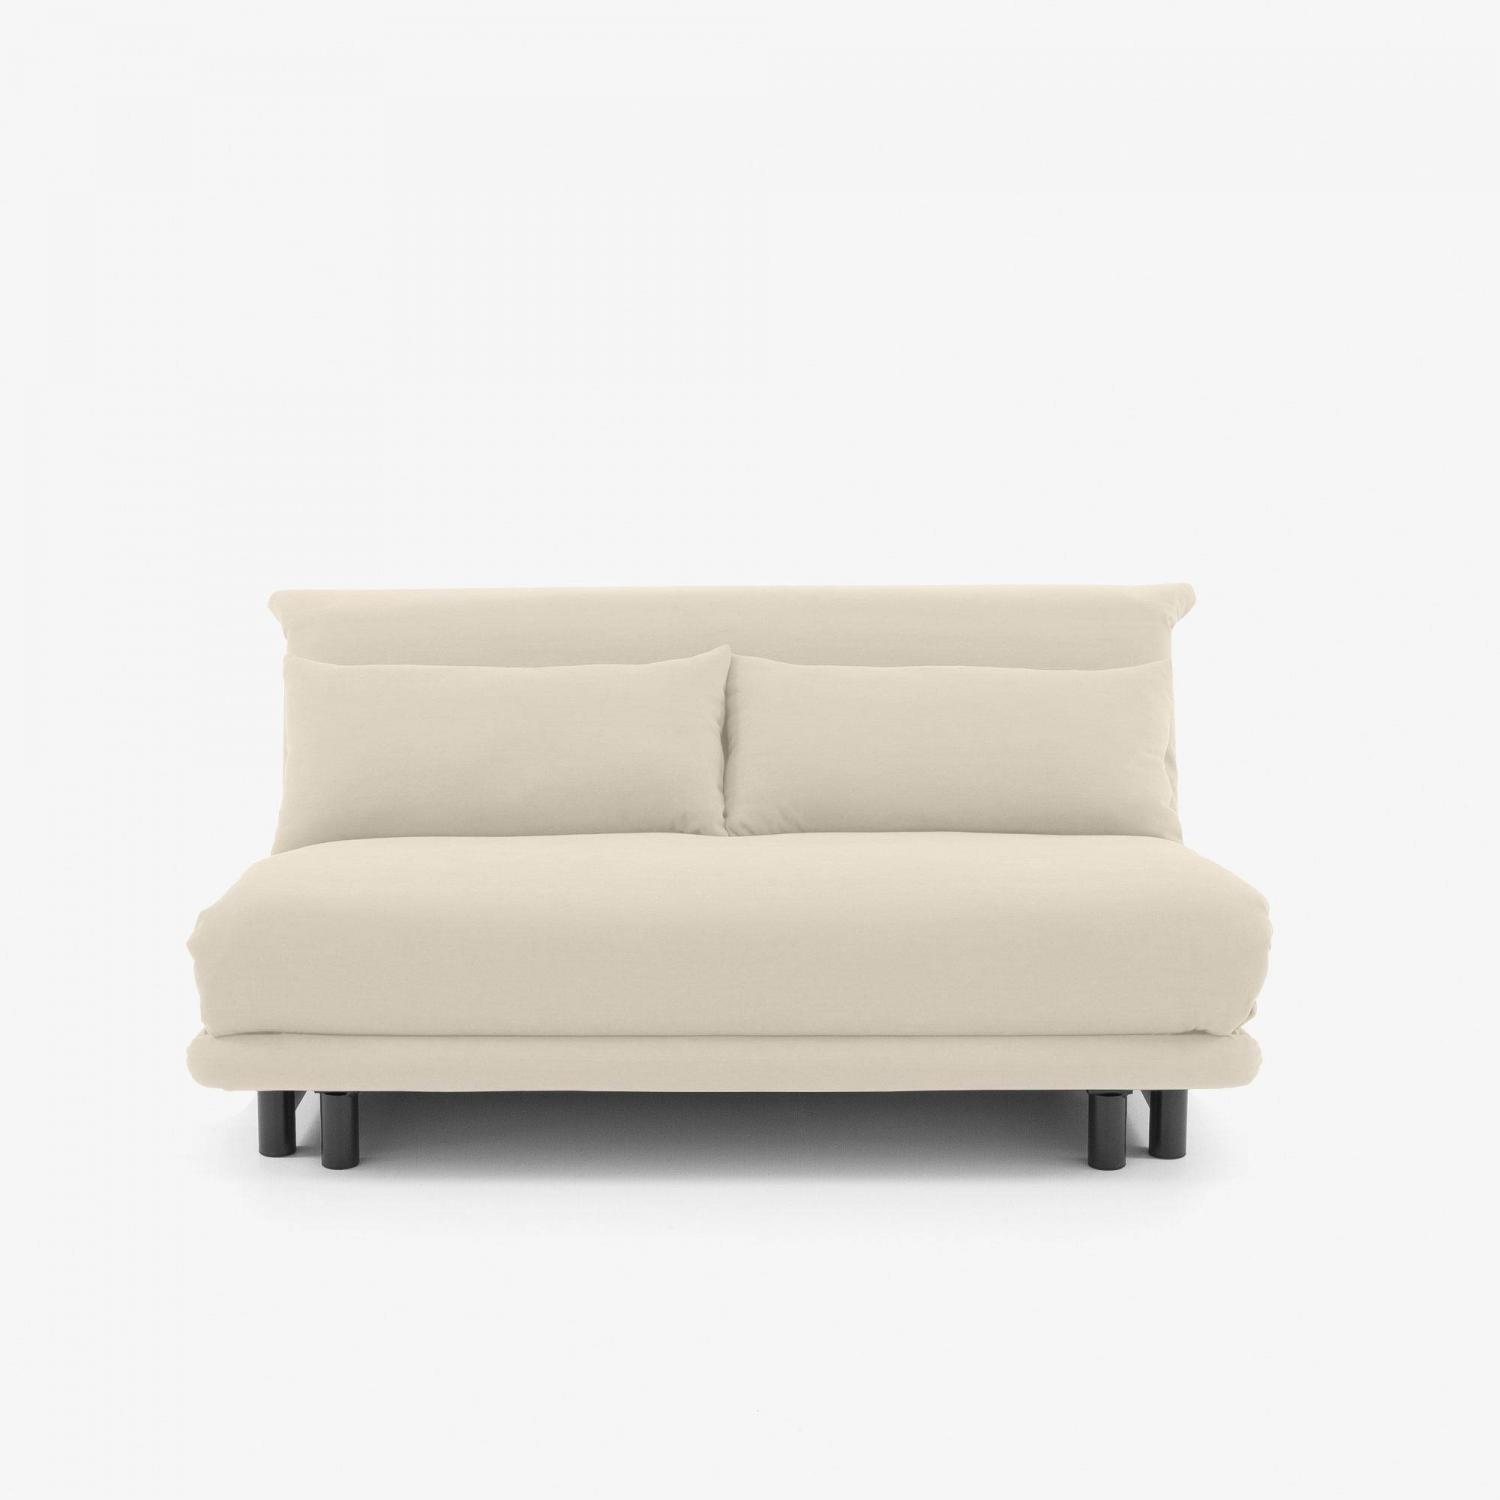 Multy Ecru Ligne Roset Hamburg